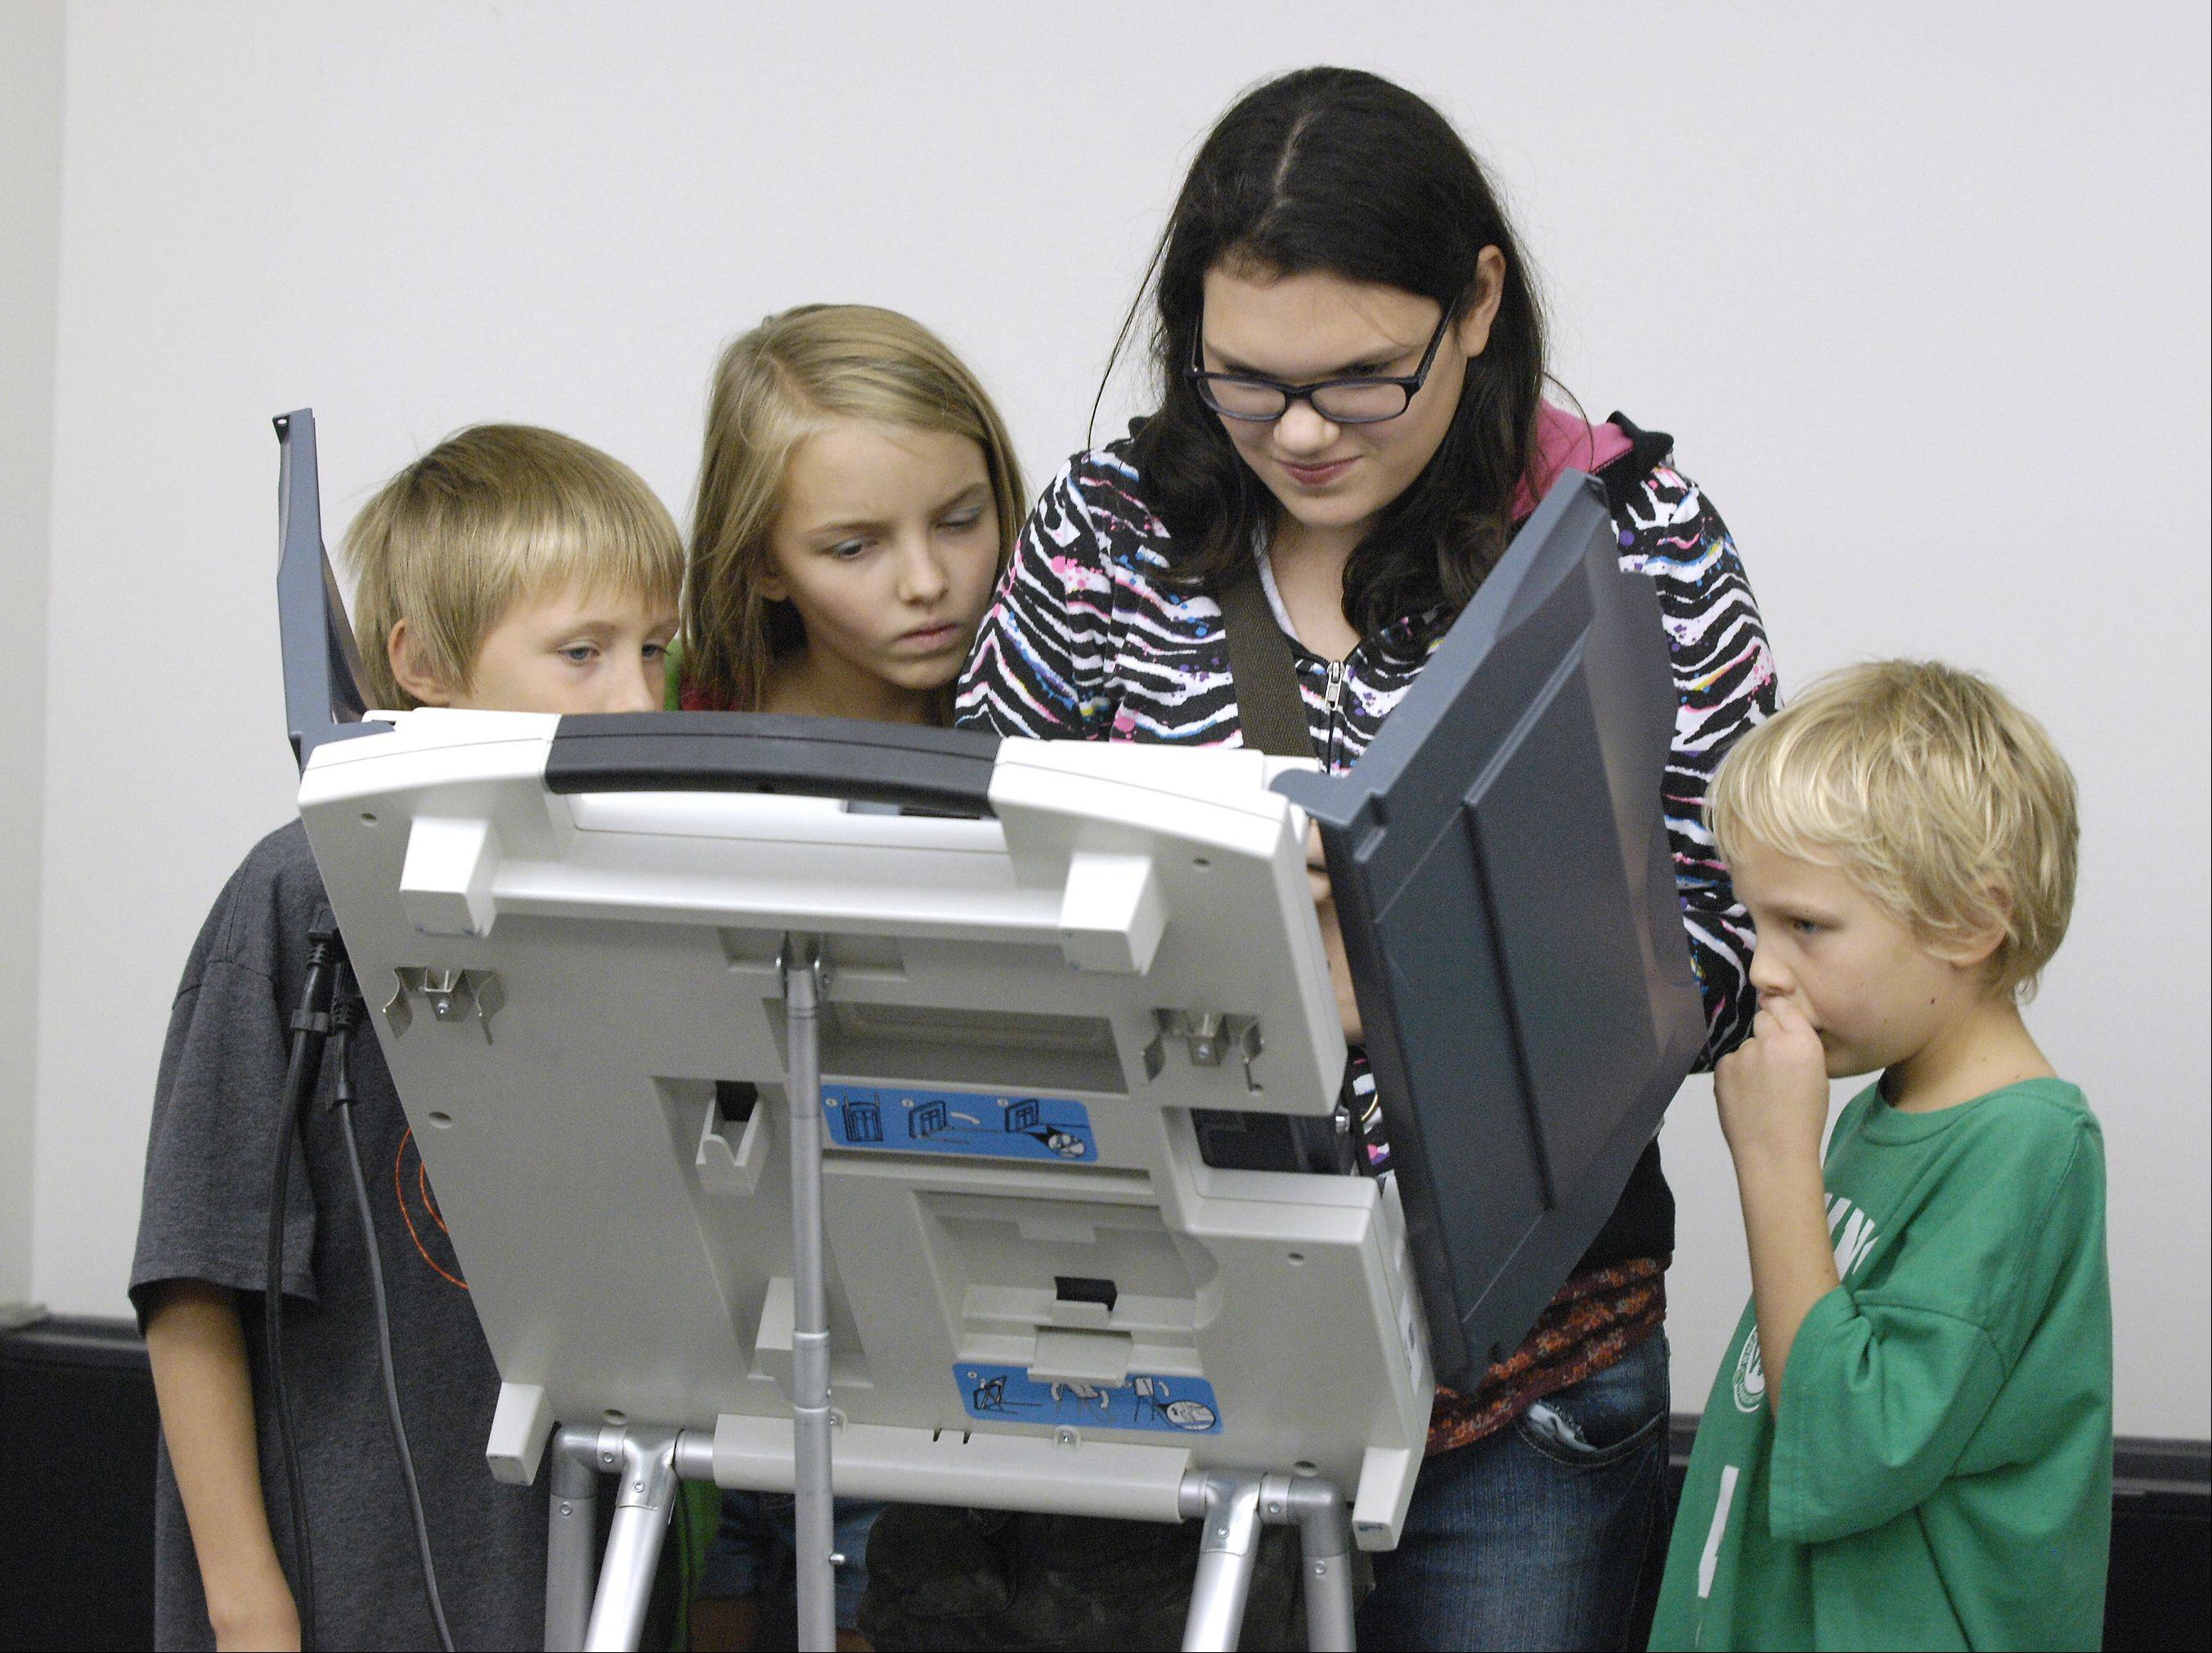 Lydia Penosky, 21, of Wheaton votes for the first time with some of her bothers and sisters at her side, Daniel, 9, Liberty, 11, and Patrick, 7, on the first day of early voting at the DuPage County government building in Wheaton. As of 2:30 p.m. more than 334 DuPage County residents had voted at the government building location.